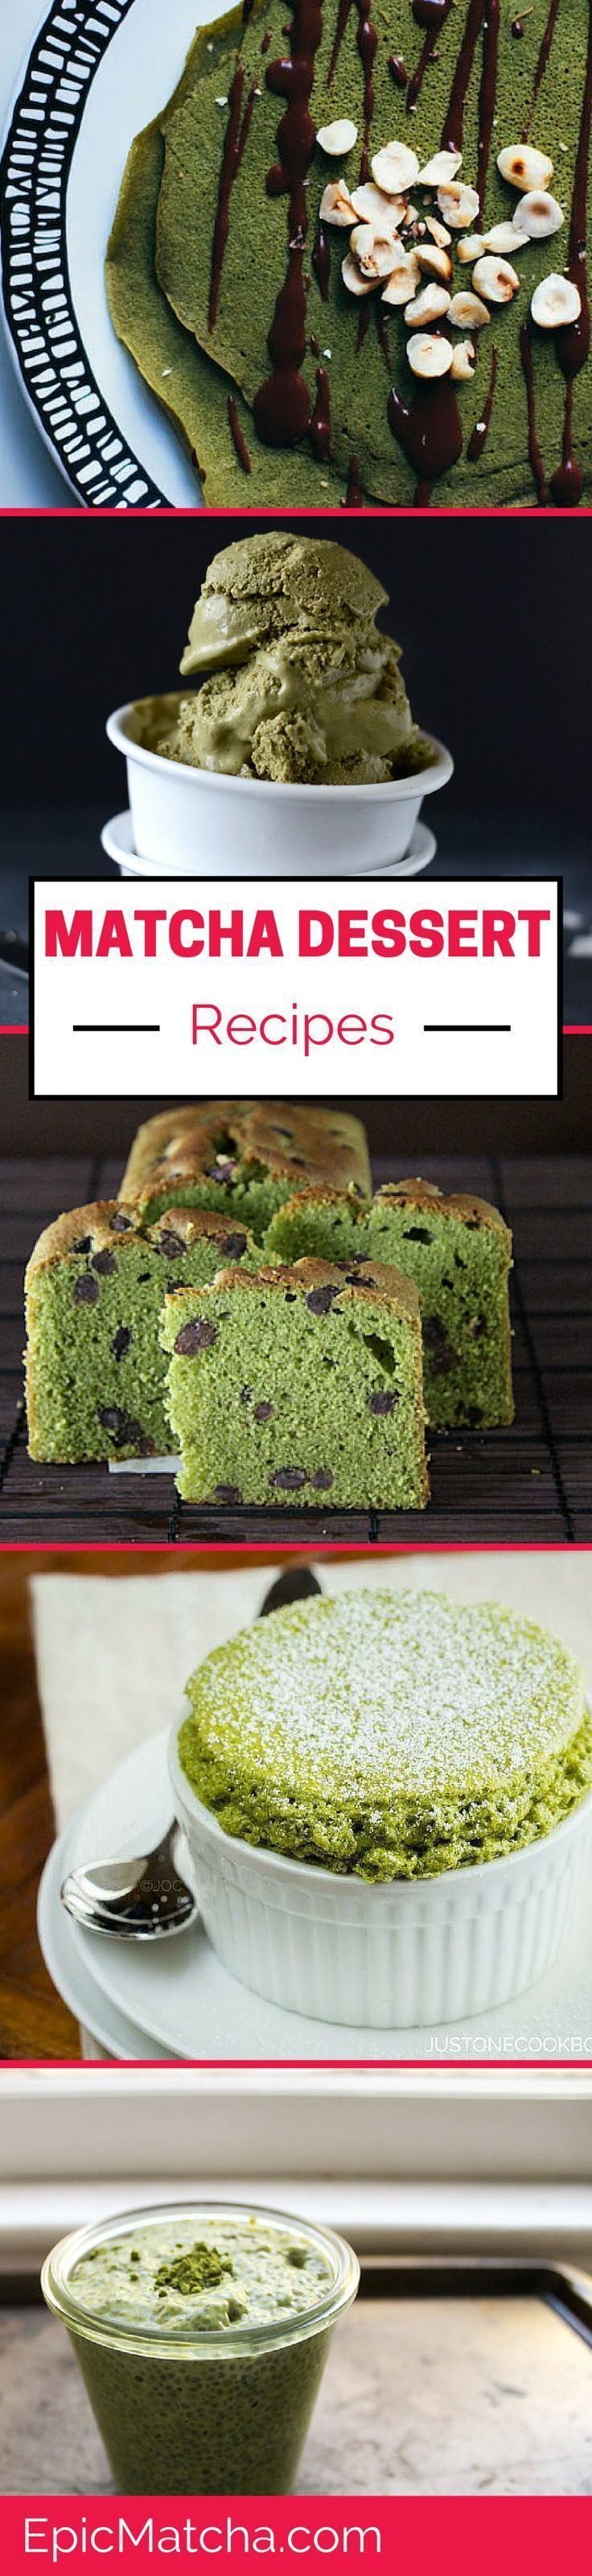 Five matcha dessert recipes: Matcha Pound Cake, Matcha Green Tea Souffle, Green Tea Coconut Ice Cream, Matcha Gluten-Free Crêpes and Matcha Chia Seed Pudding. Plus, get our 16 Recipes for drinking matcha tea! epicmatcha.com...